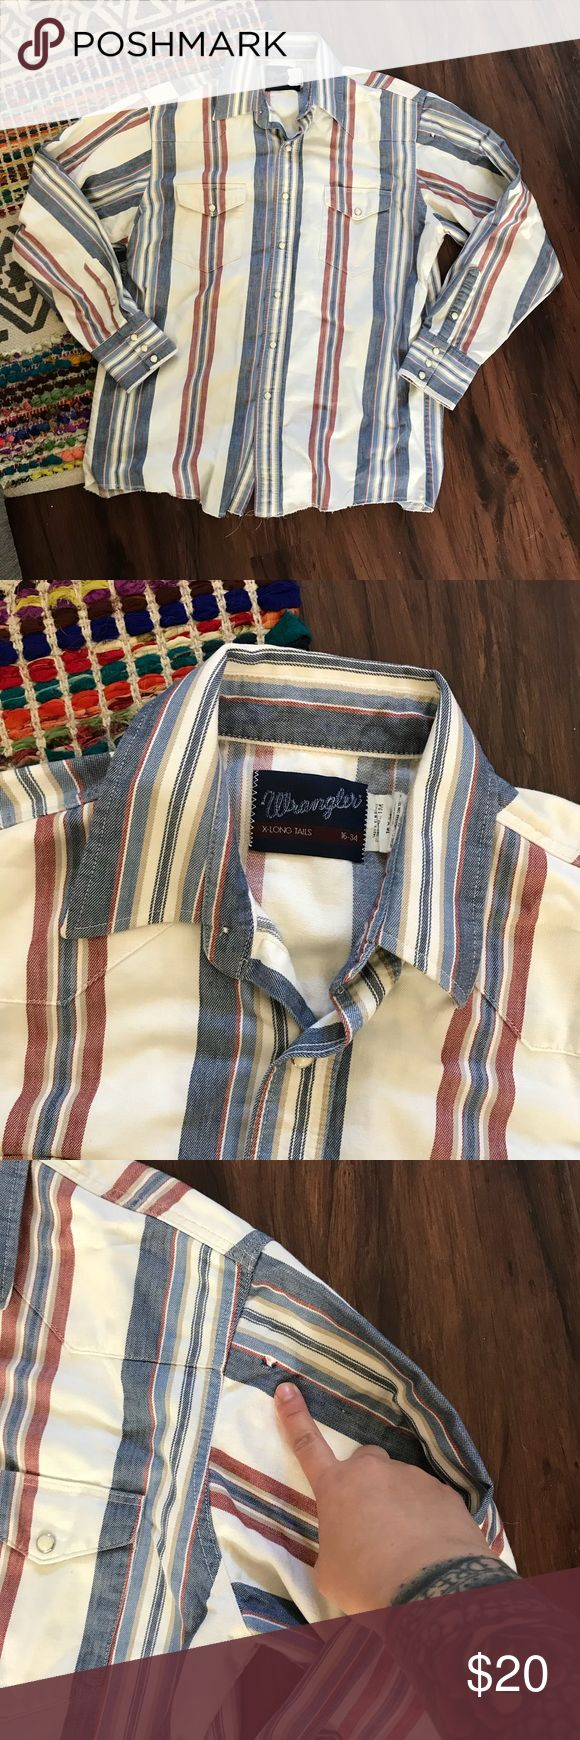 """Vintage Wrangler Cowboy Cut Western Button Up Vintage Wrangler Western cowboy cut button down shirt. Pearlized snap buttons on sleeves, breast pockets and down the front. Only flaw is a small tear and faint spot below left breast pocket as pointed out in photo. Other than that this is in excellent vintage condition. This is a """"long tail"""" meaning the back is cut longer than the front. Fits like an XL but refer to measurements for proper fit. Bust 23"""" // waist 22.5"""" // length 30"""" back 33""""…"""